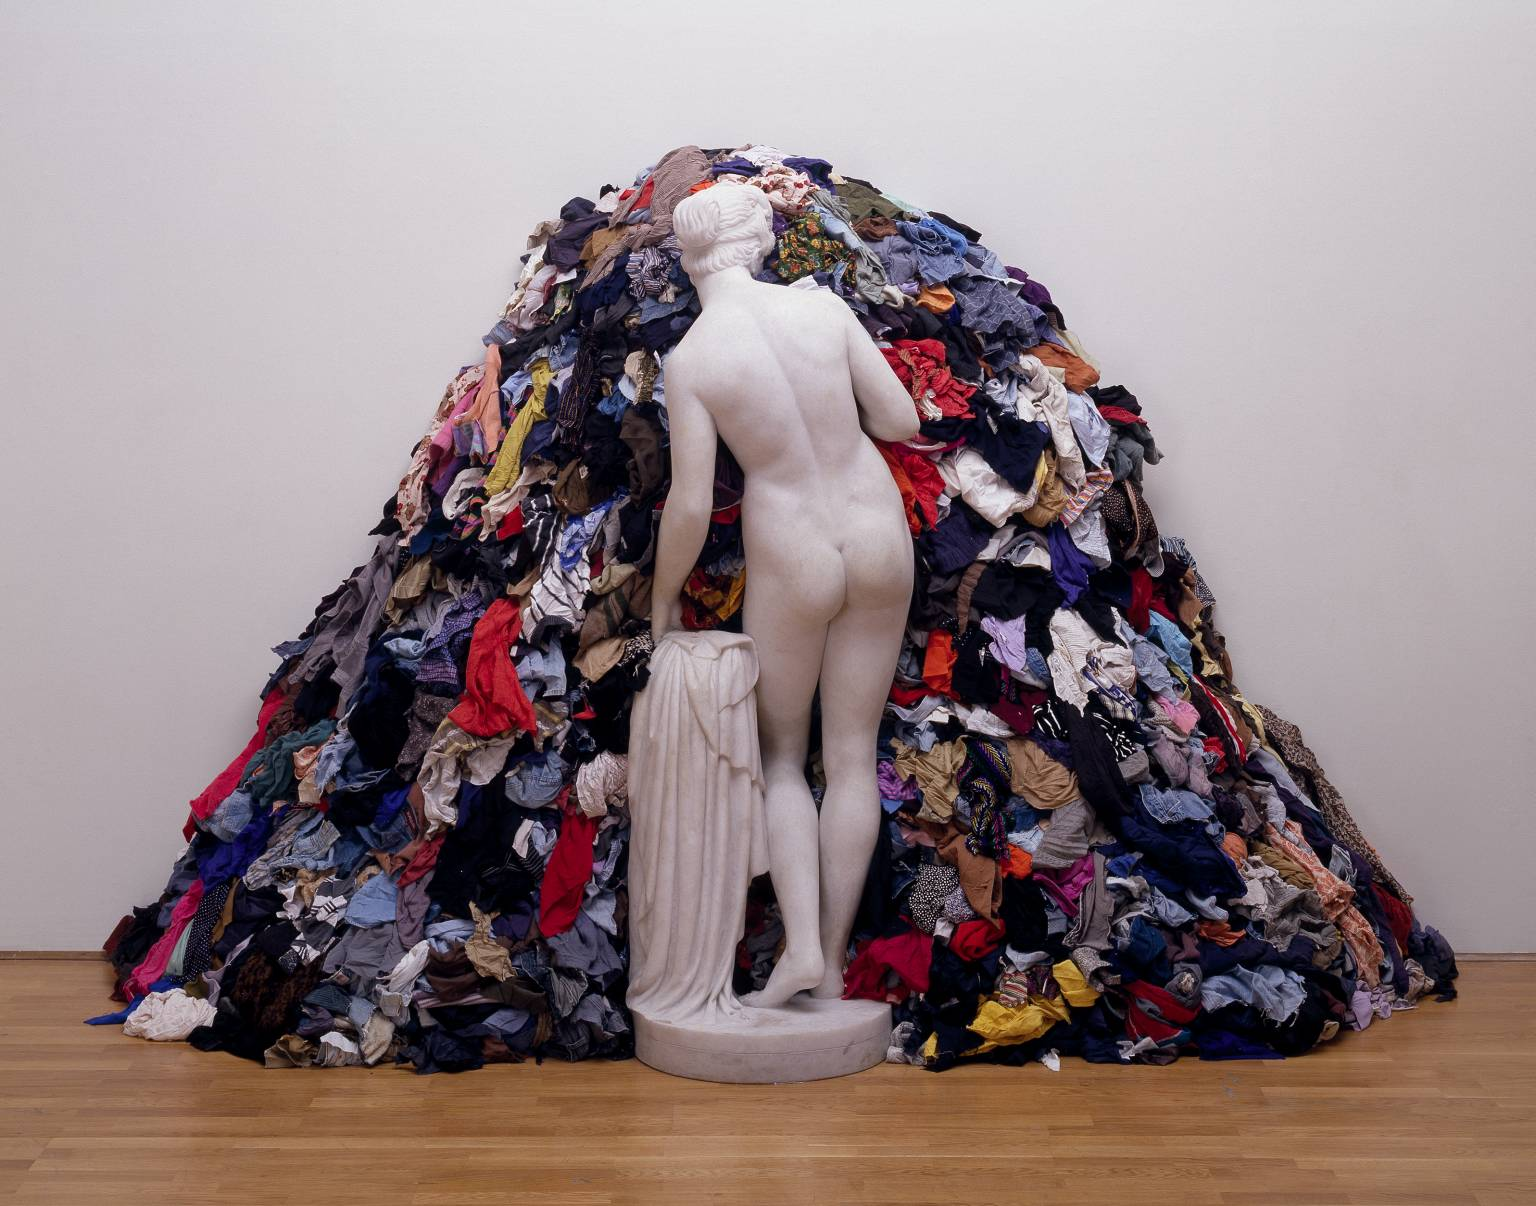 'Venus of the Rags,' 1967, 1974. Michelangelo Pistoletto. Photo © Tate, London, 2017.